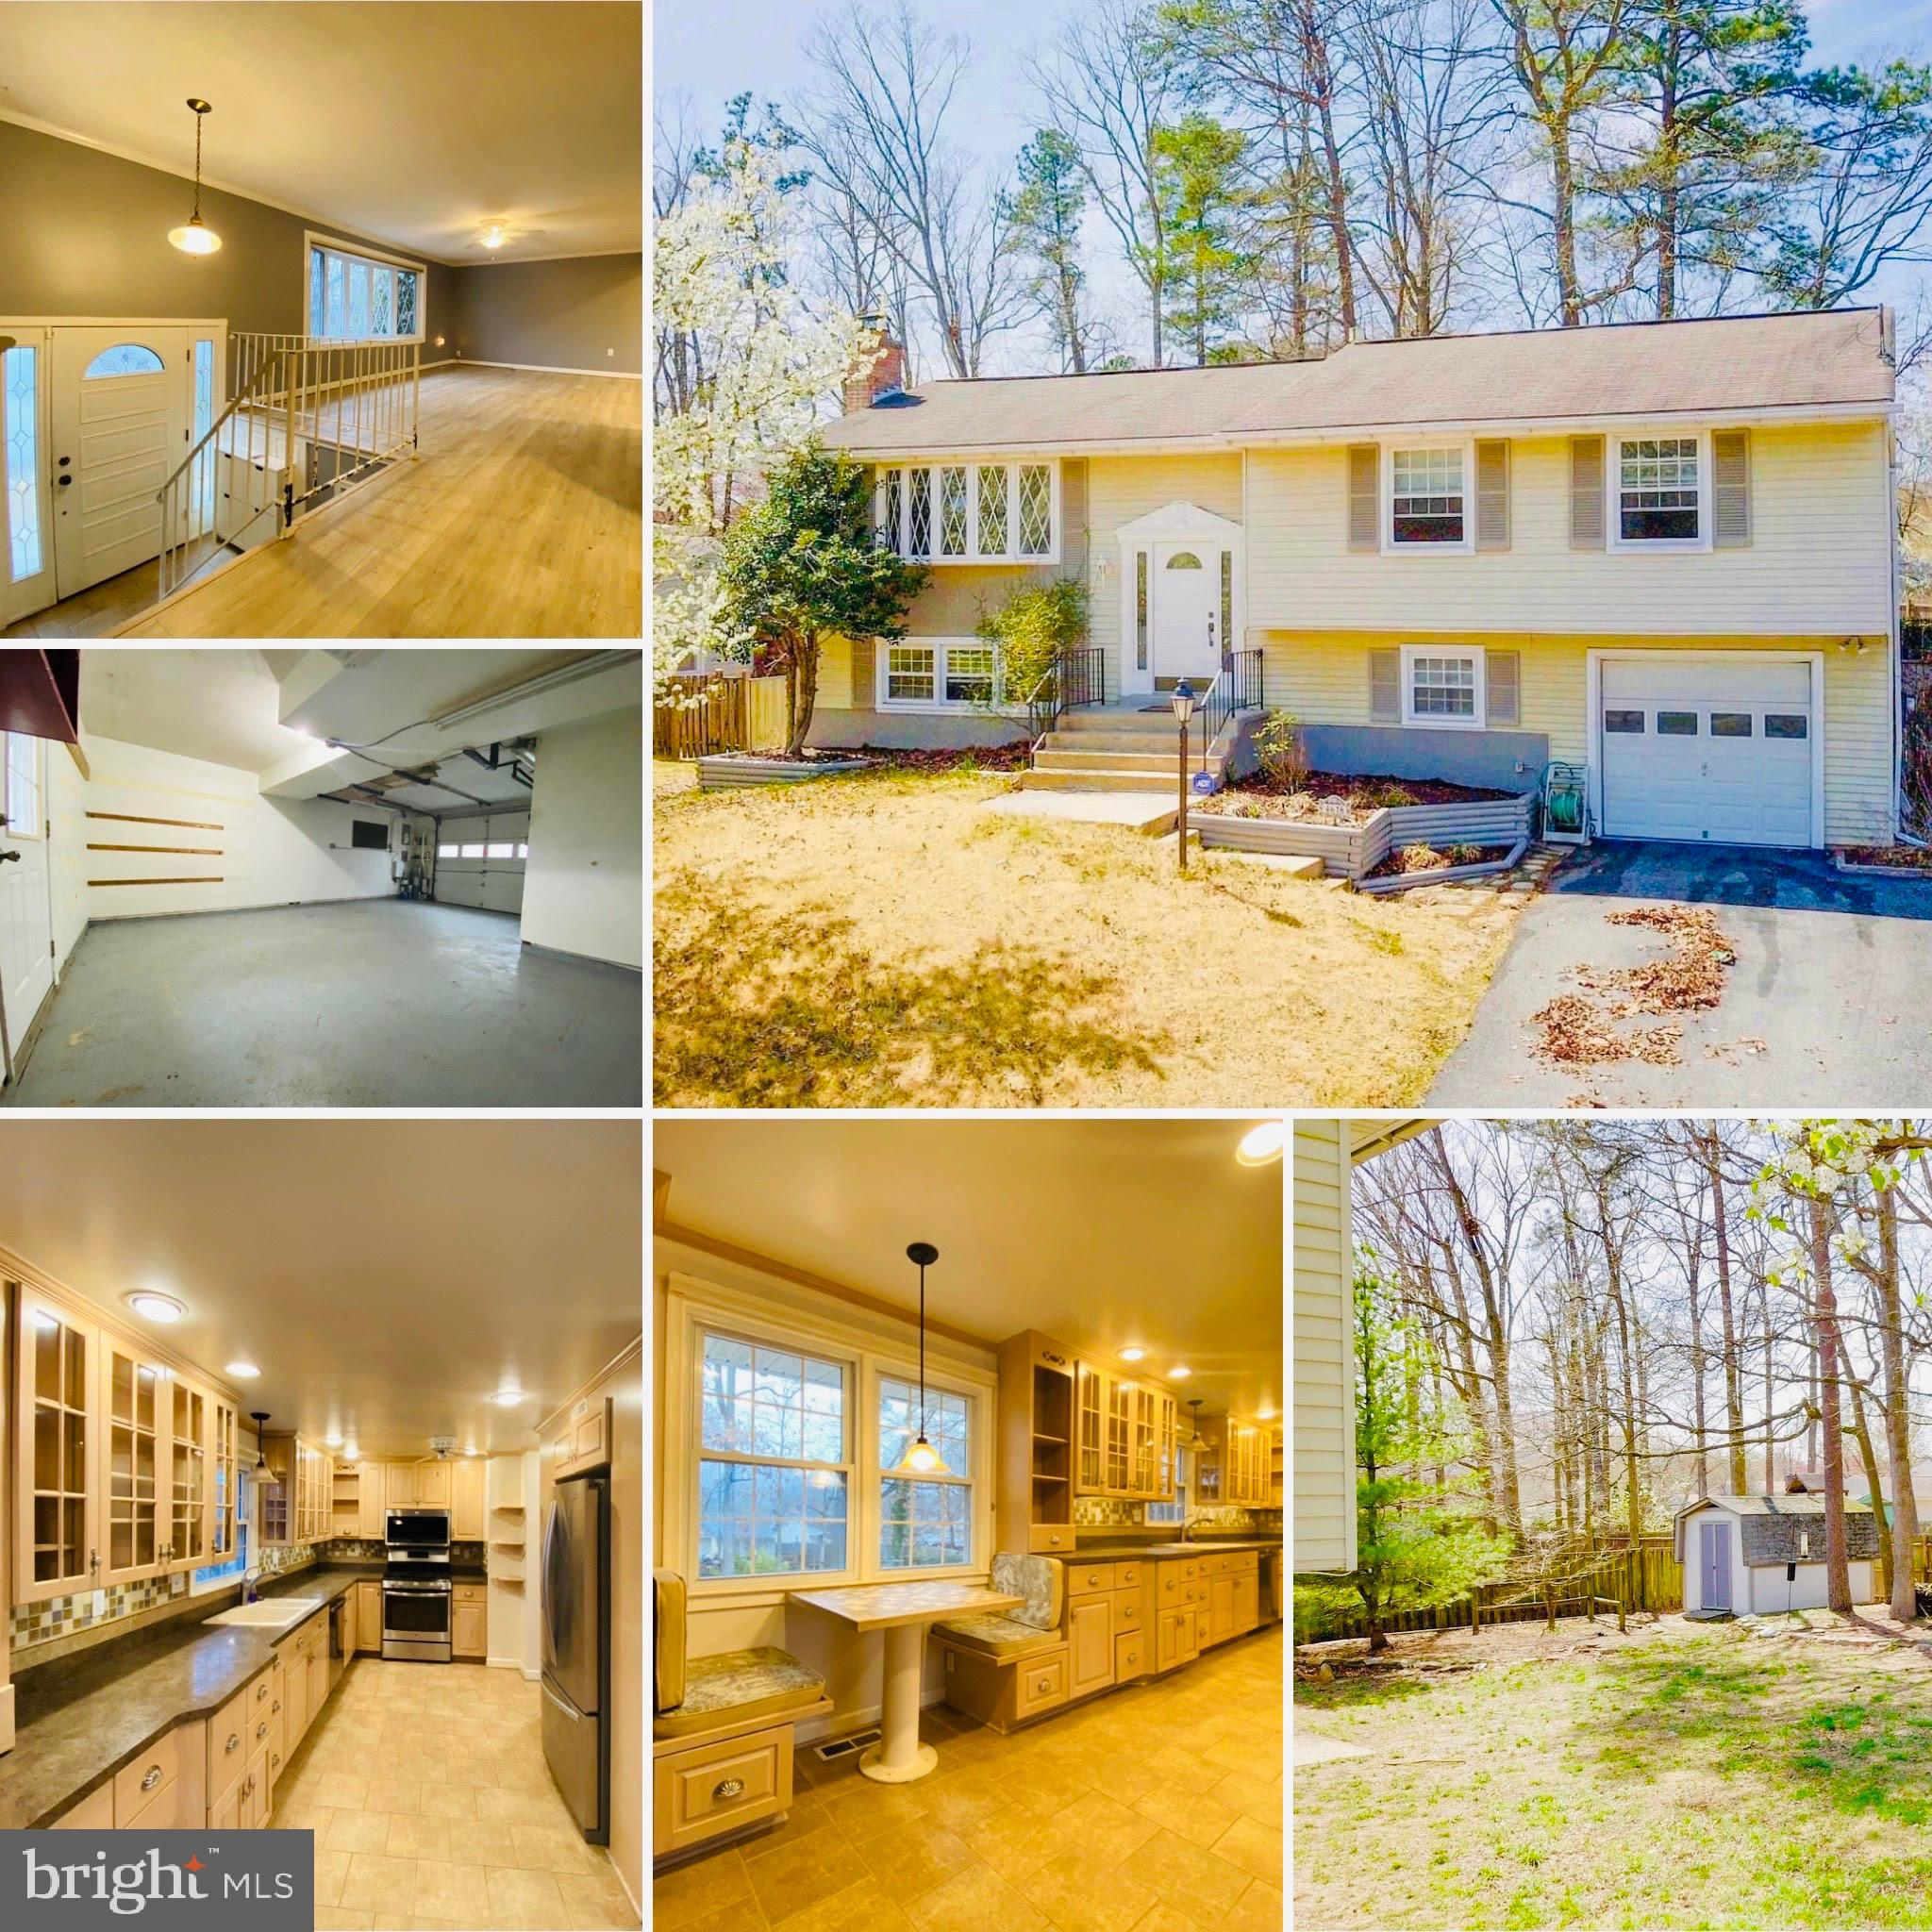 CALLING ALL BUYERS!!! This 4 bed, 3 full bath home located in Waldorf, MD has it all! The spacious u